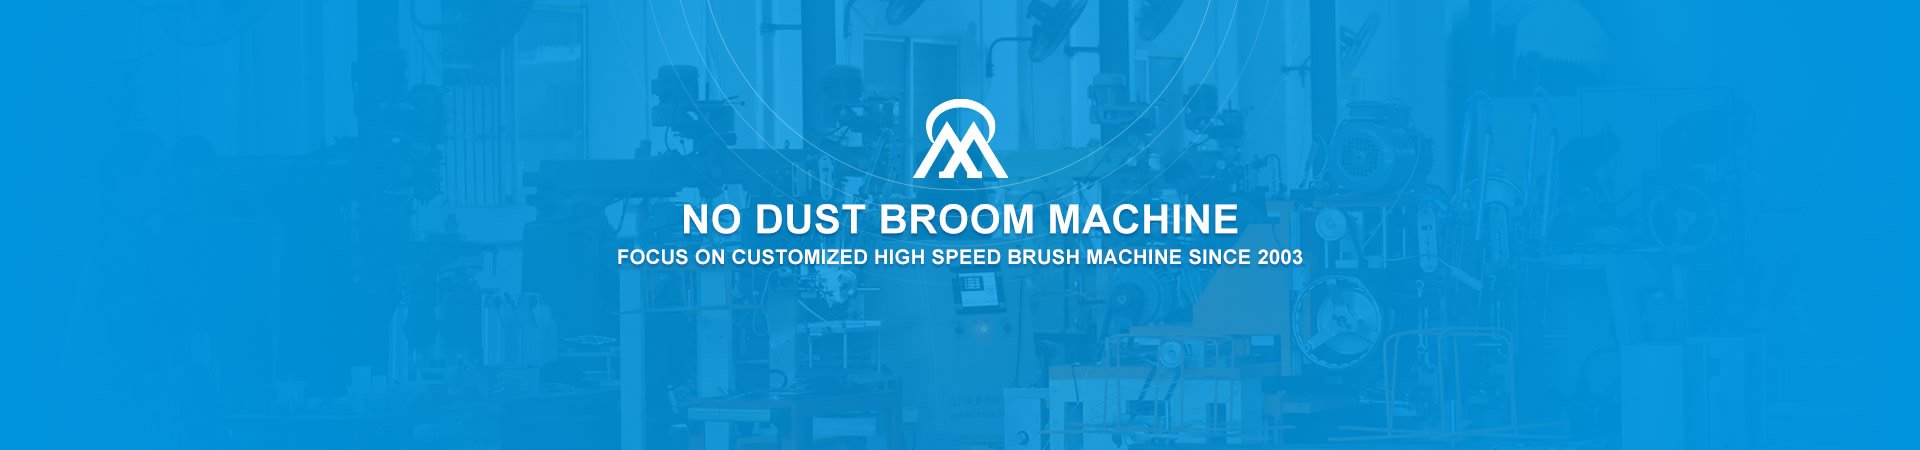 news-Meixin-MEIXIN Broom Machine Appeals to Indian Clients-img